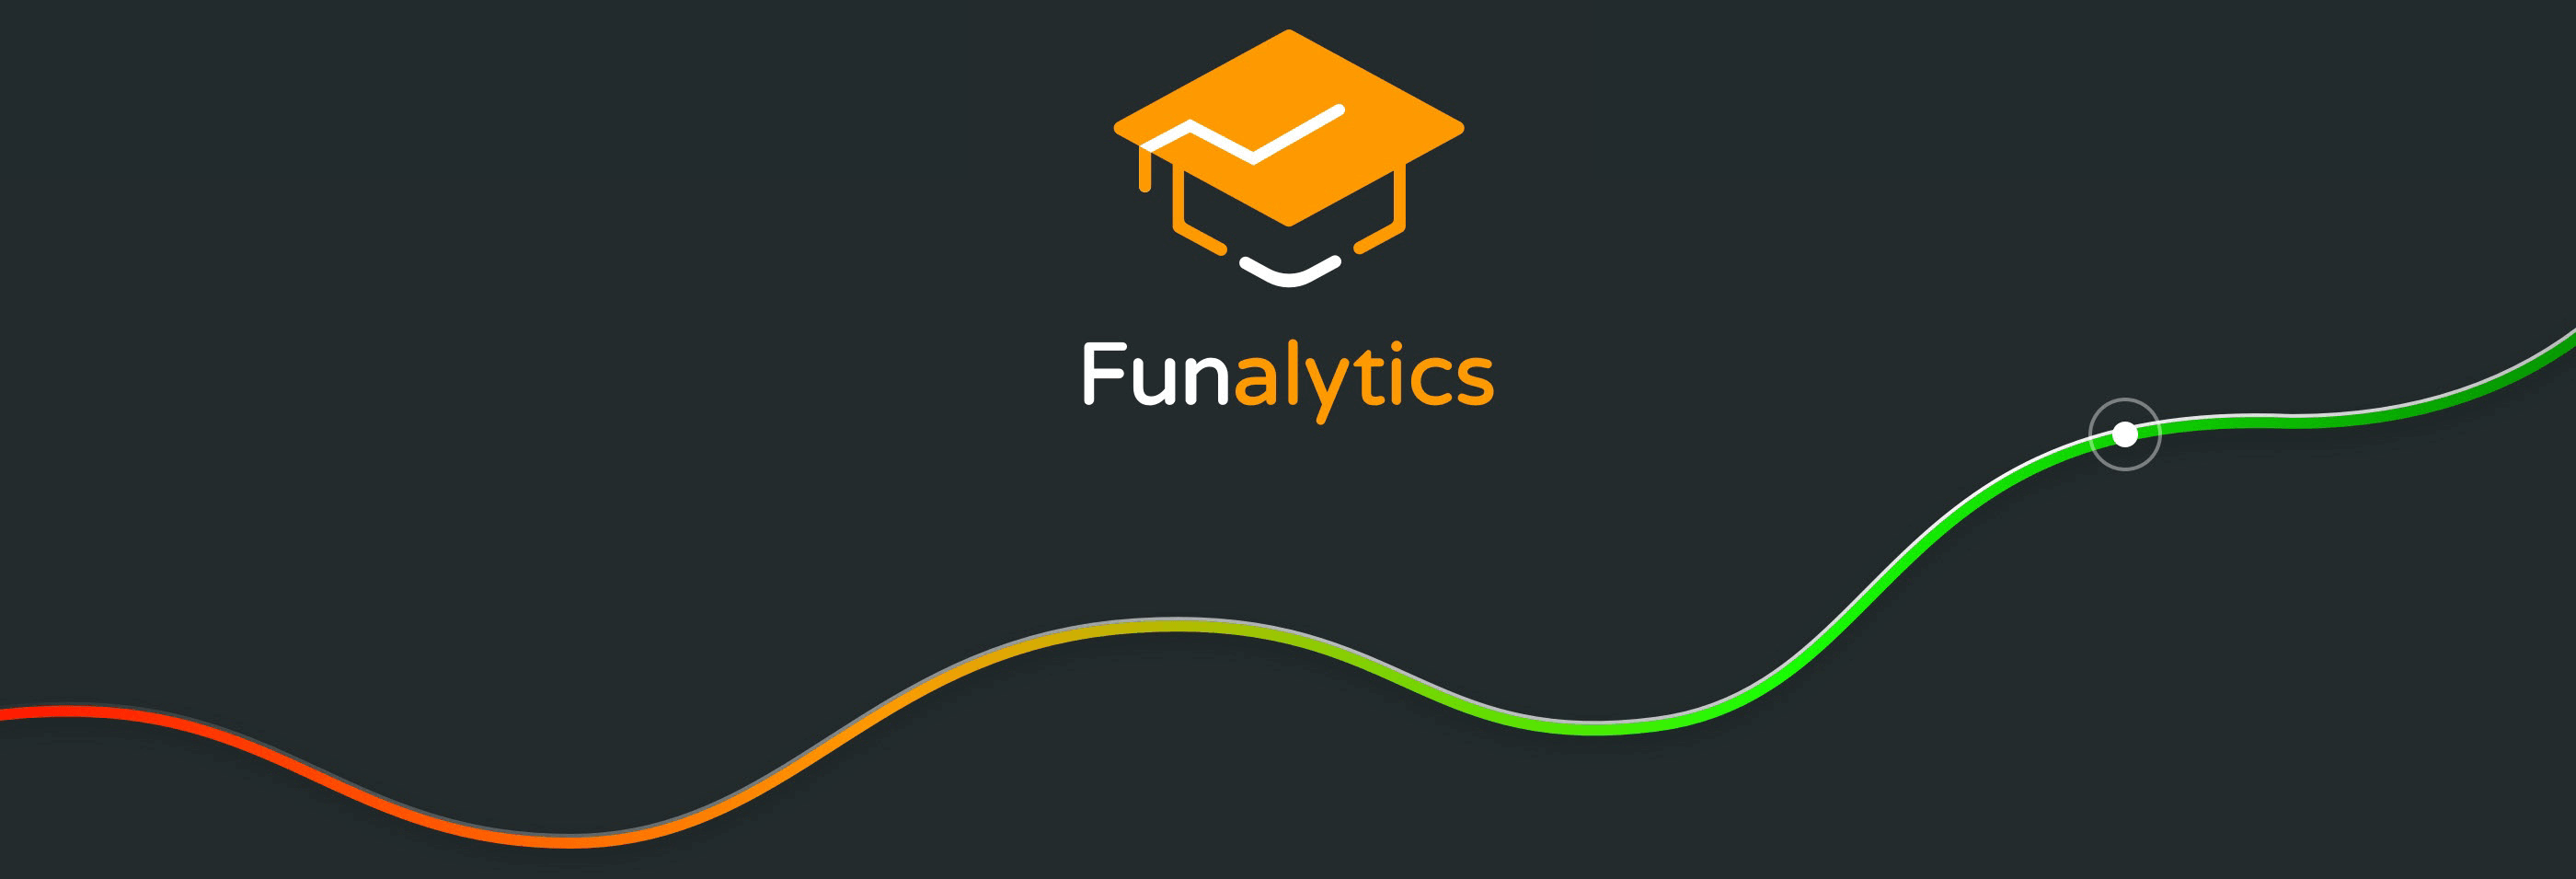 funalytics-preview